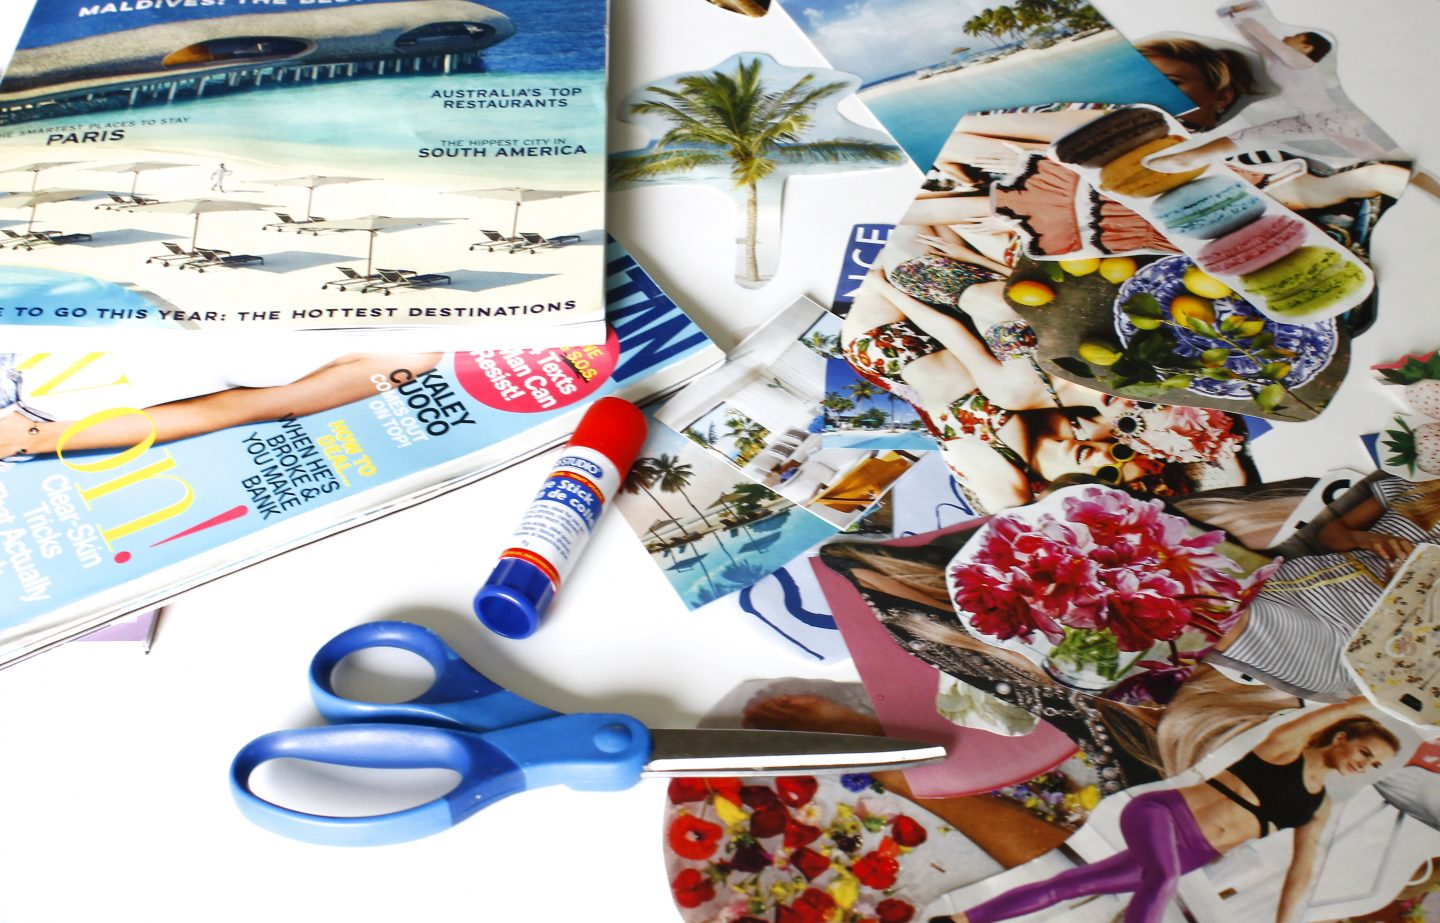 Making A Vision Board: Inspiration and Creativity